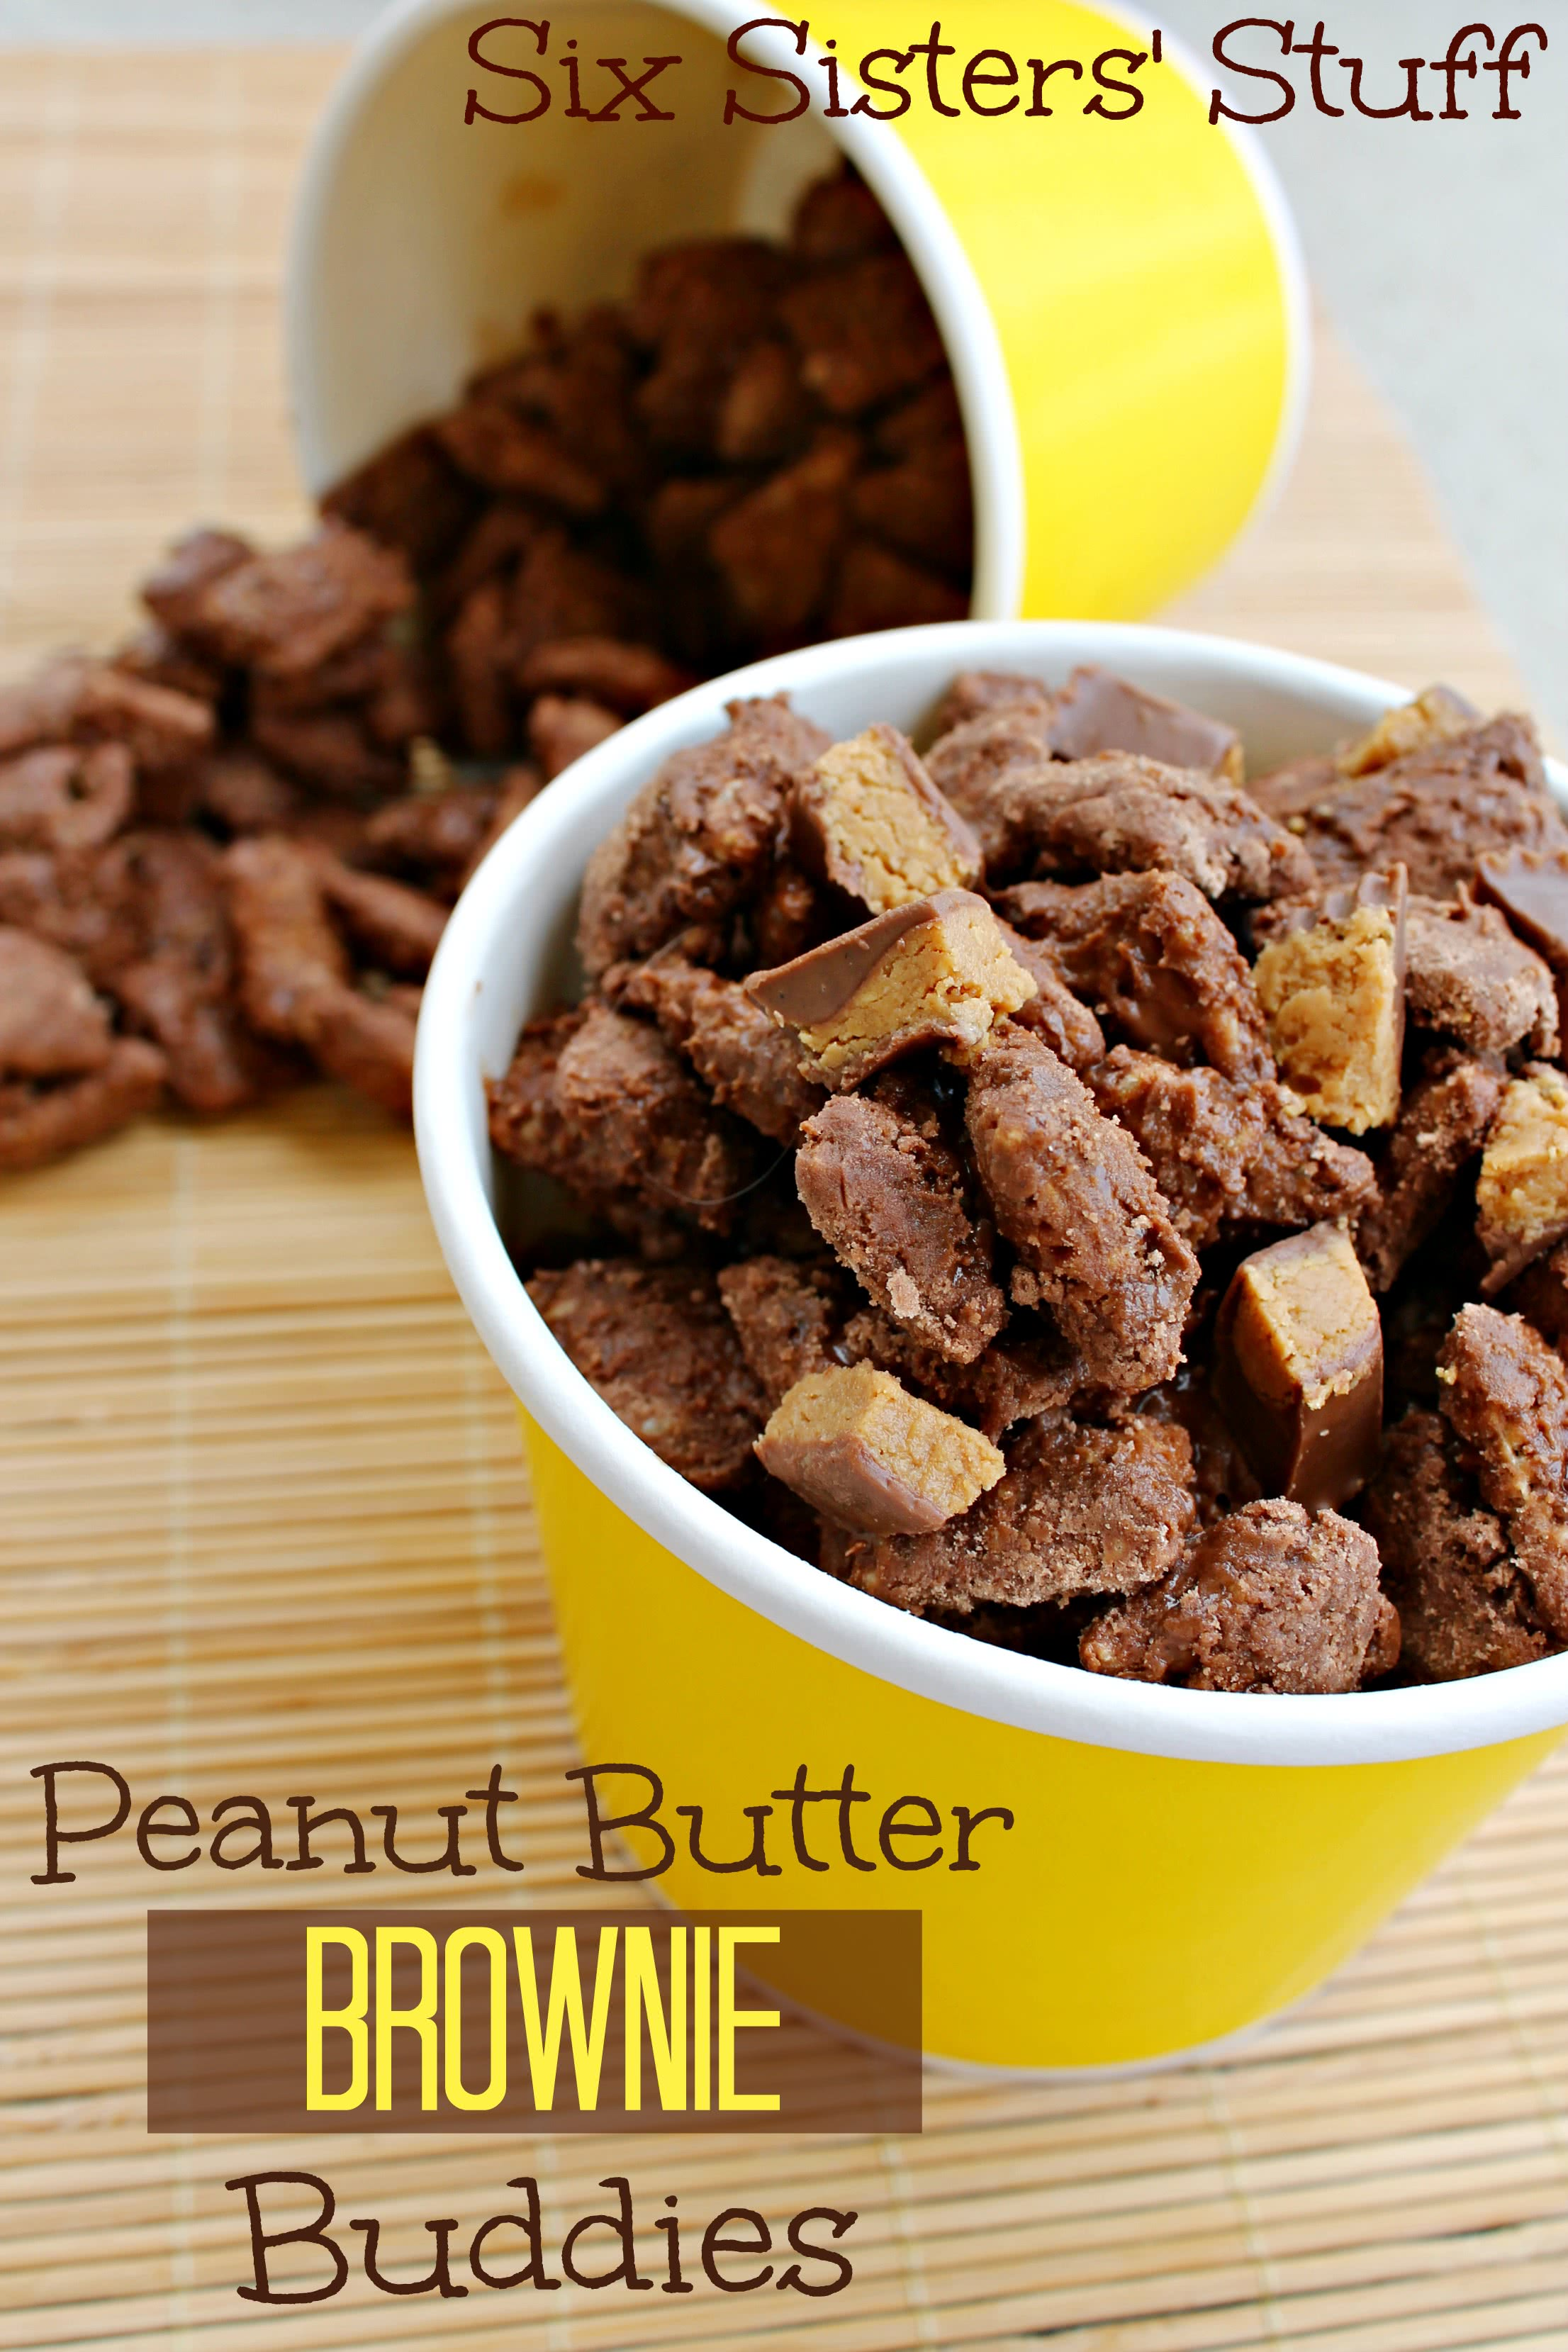 Peanut Butter Brownie Buddies